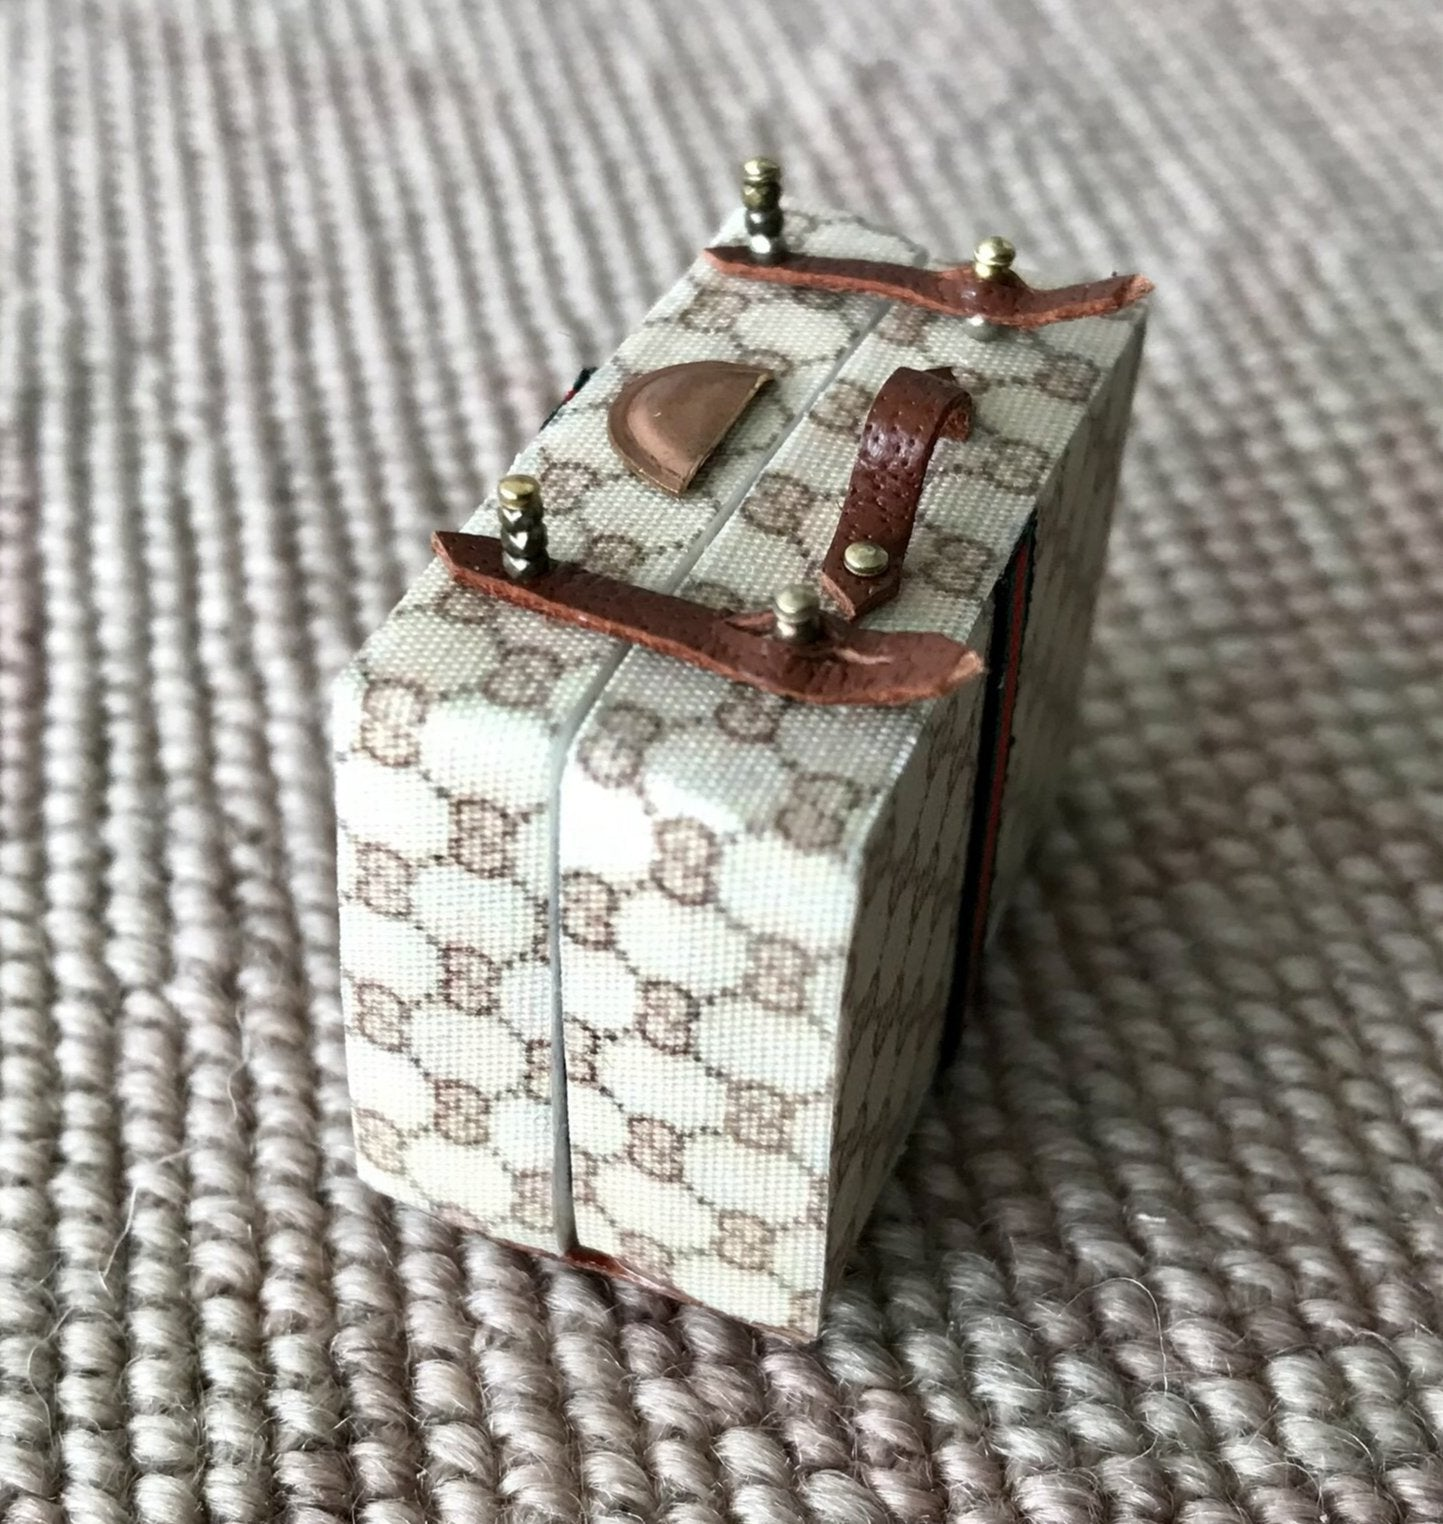 Luggage Suitcase Grip Dressing Case Small 1:12 Dollhouse Miniature